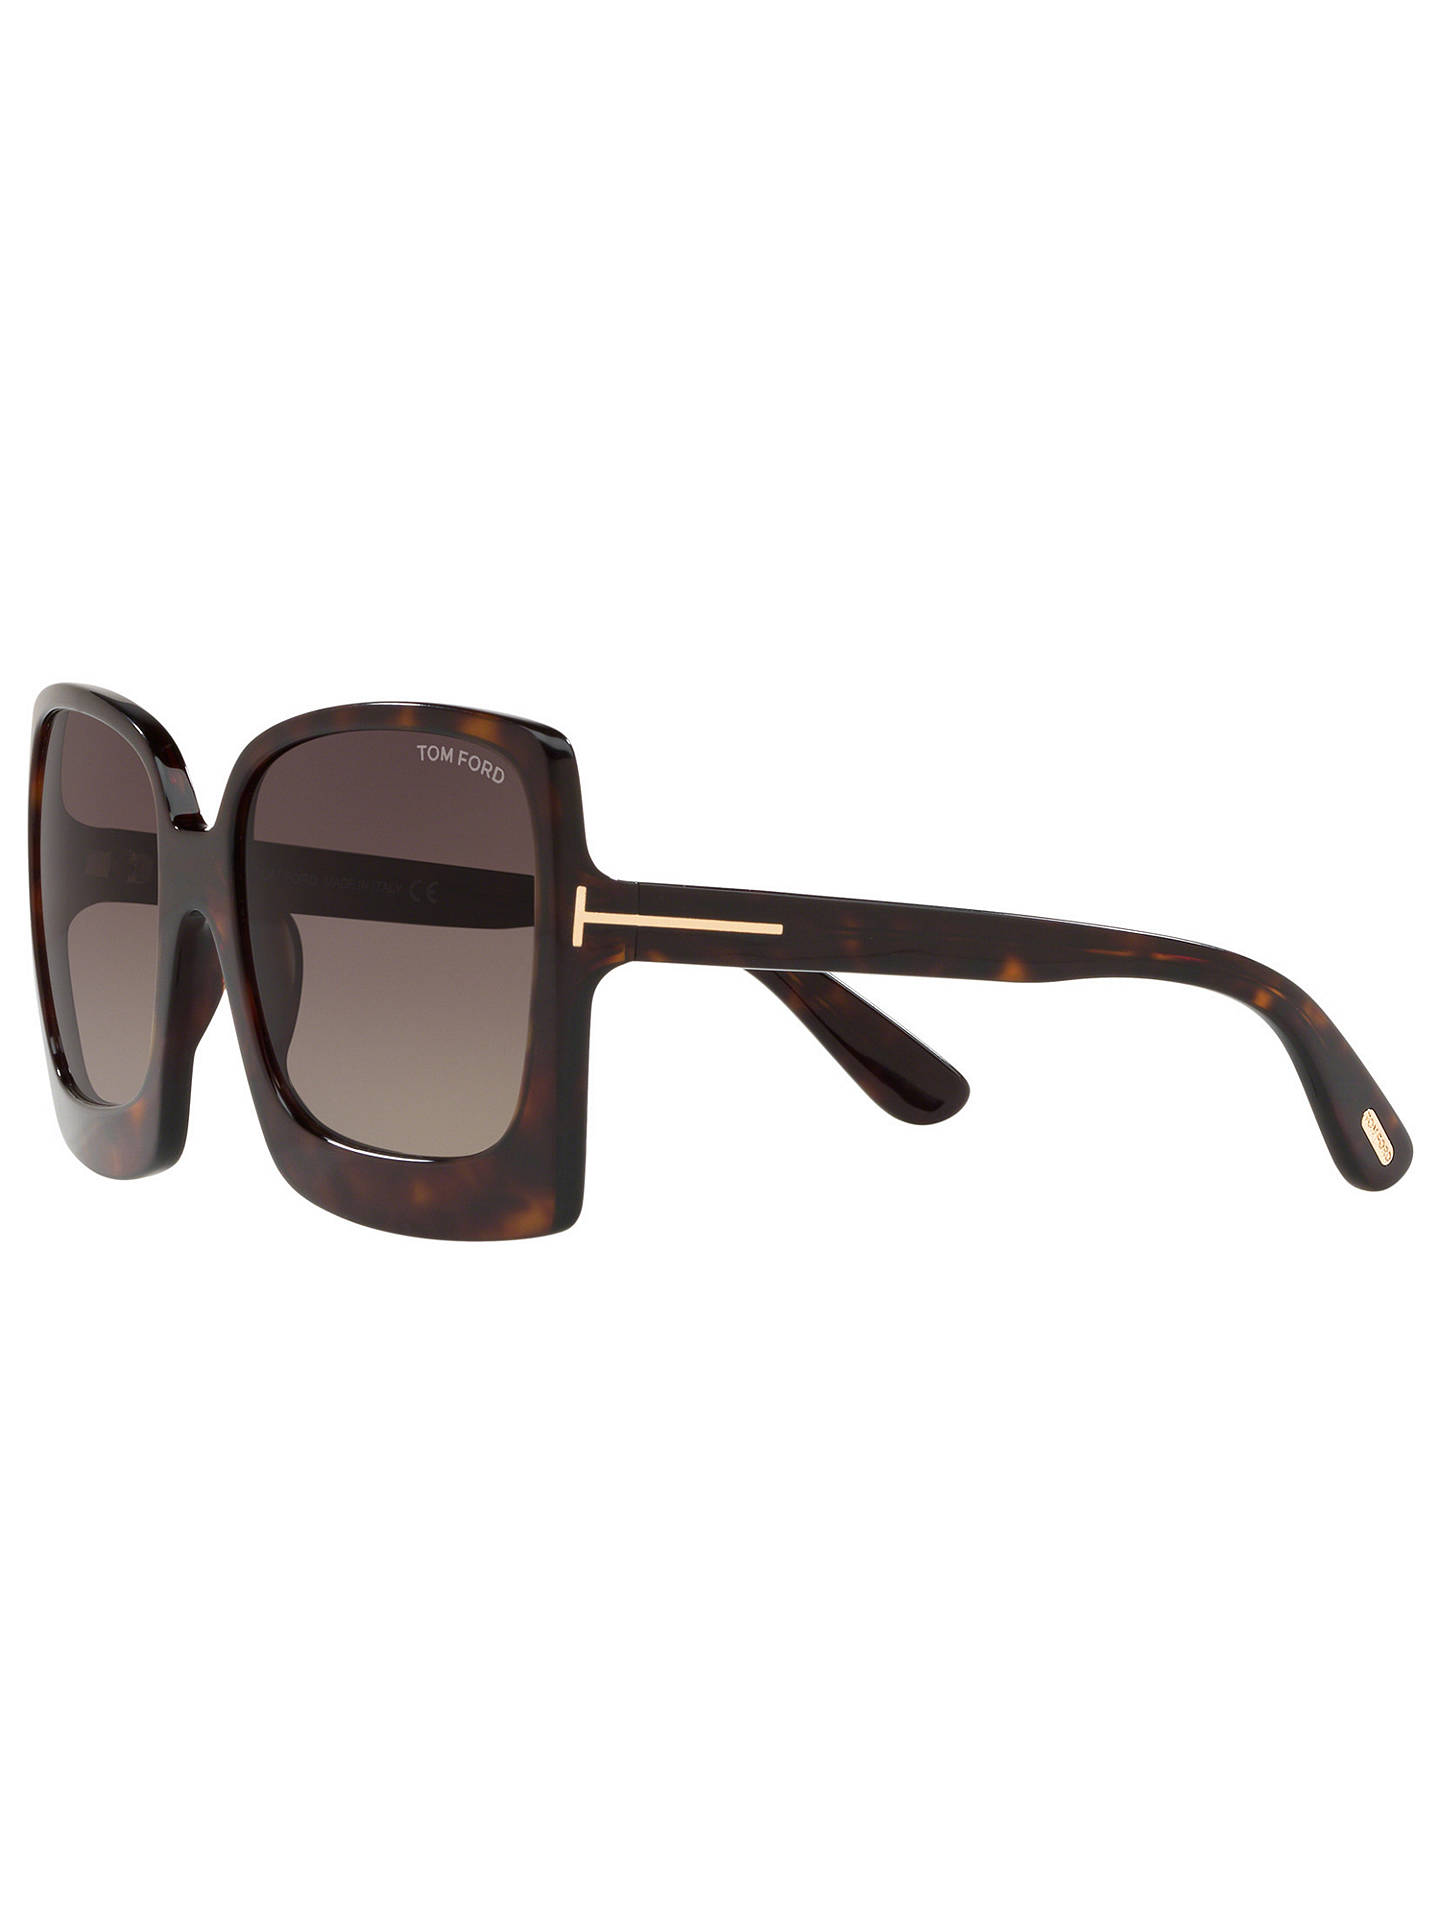 Buy TOM FORD FT0617 Women's Katrine-02 Oversized Square Sunglasses, Tortoise/Brown Gradient Online at johnlewis.com